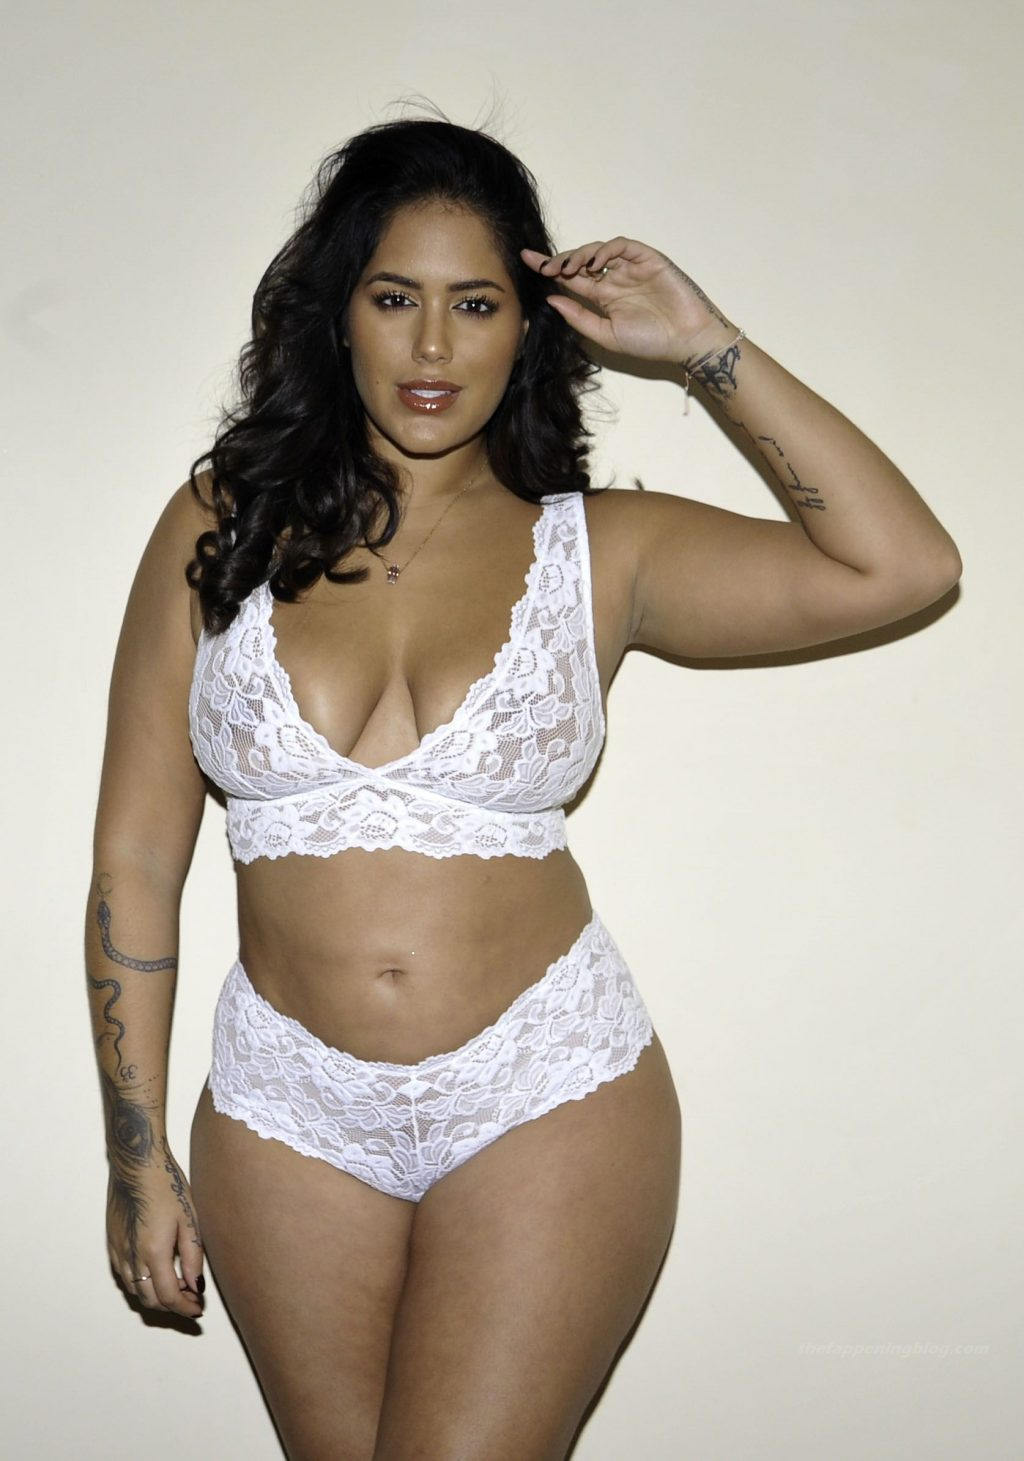 Malin Andersson Shows Off Her Figure In White Lingerie (21 Photos)